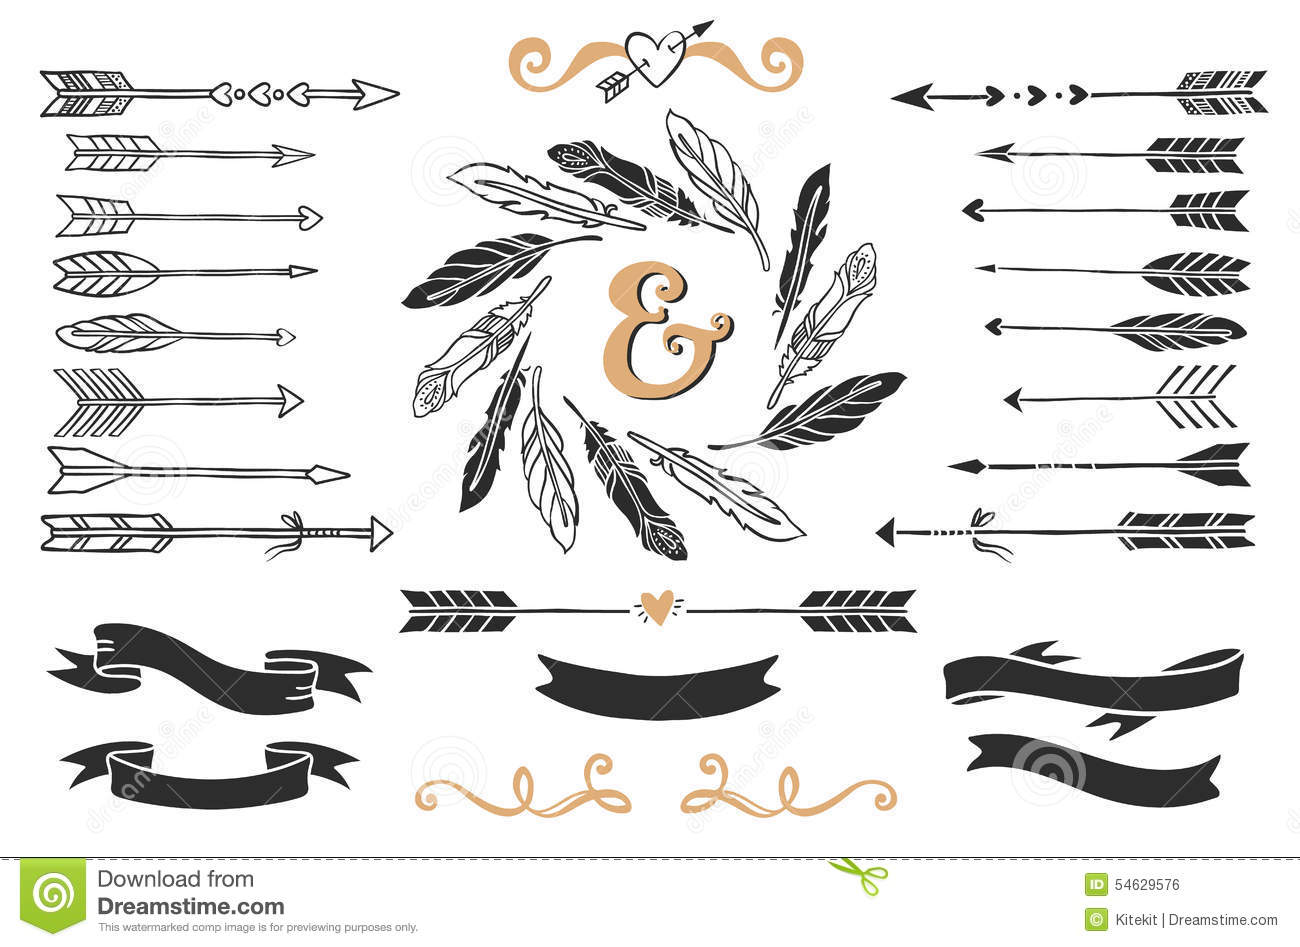 Hand drawn vintage arrows, feathers, and ribbons with lettering.